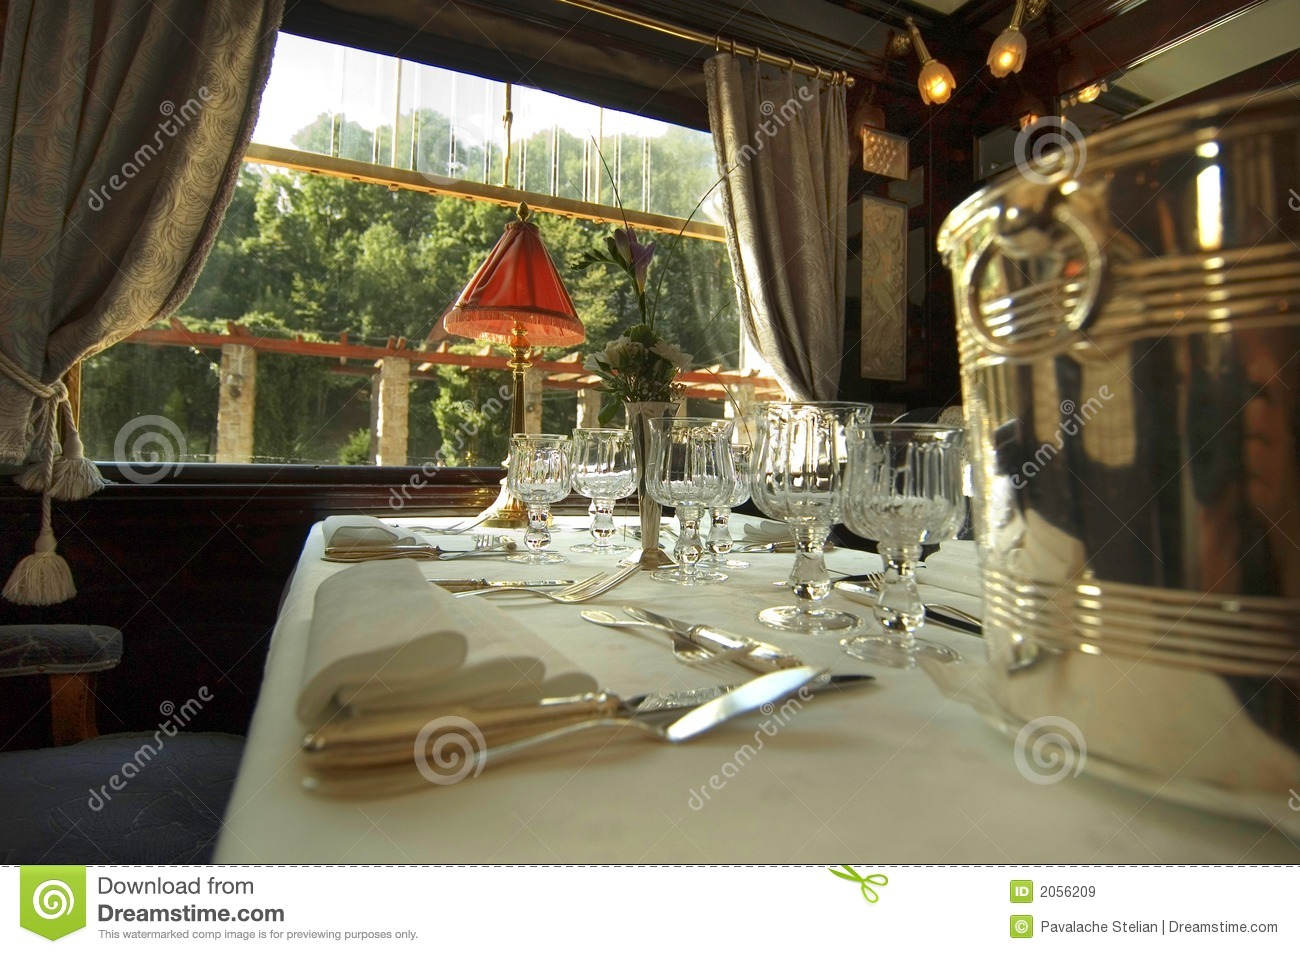 orient express interior royalty free stock images image